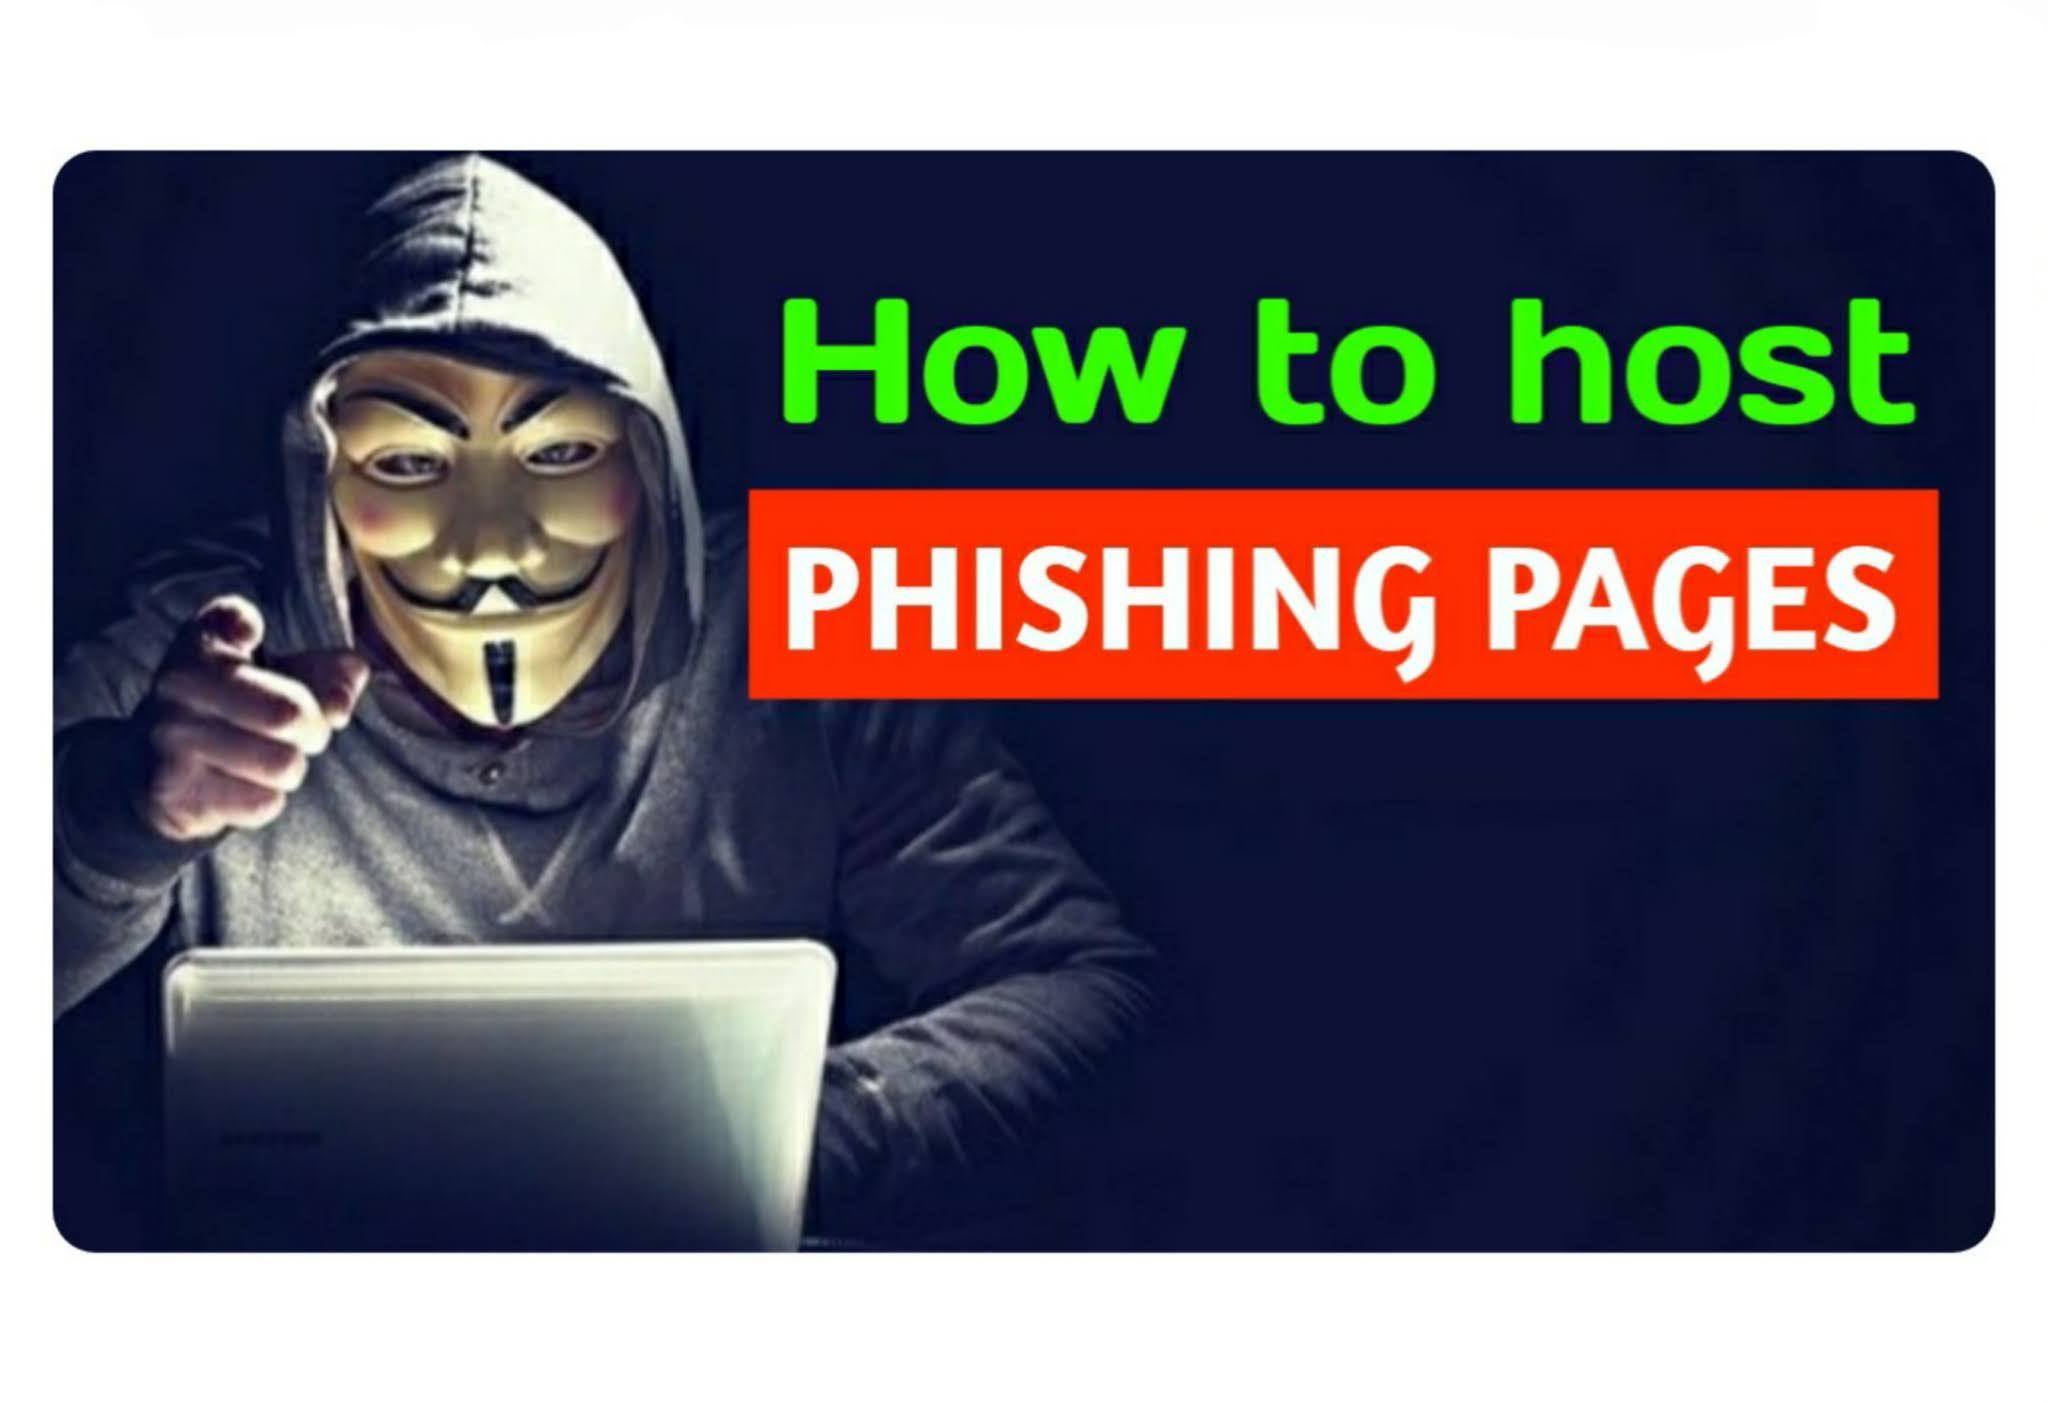 how to host phishing pages in 000webhost